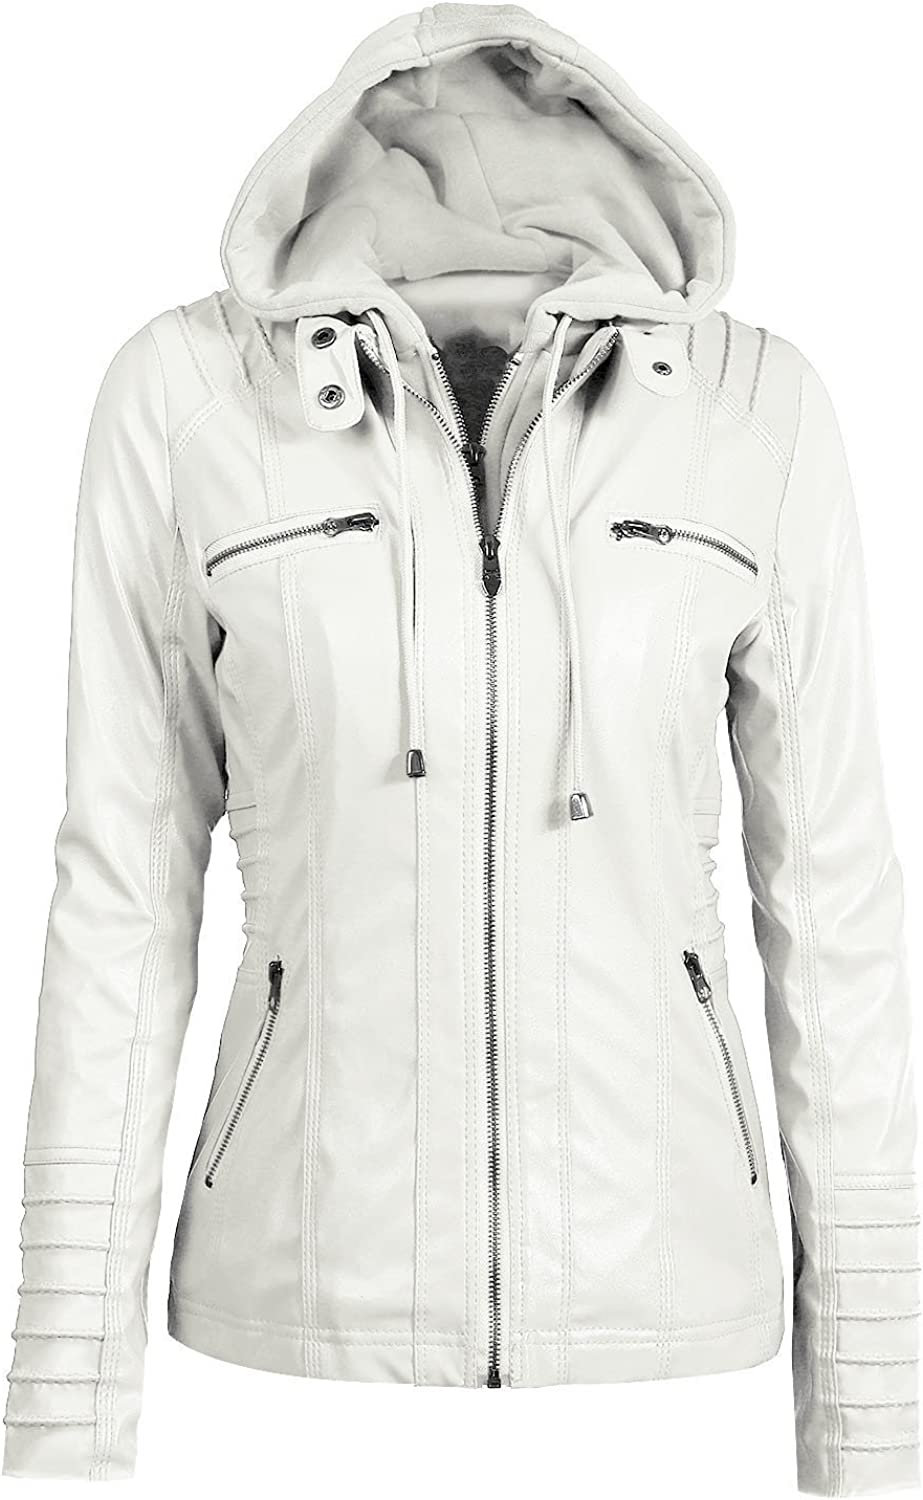 Wollet Women's Removable Hooded Faux Leather Jackets